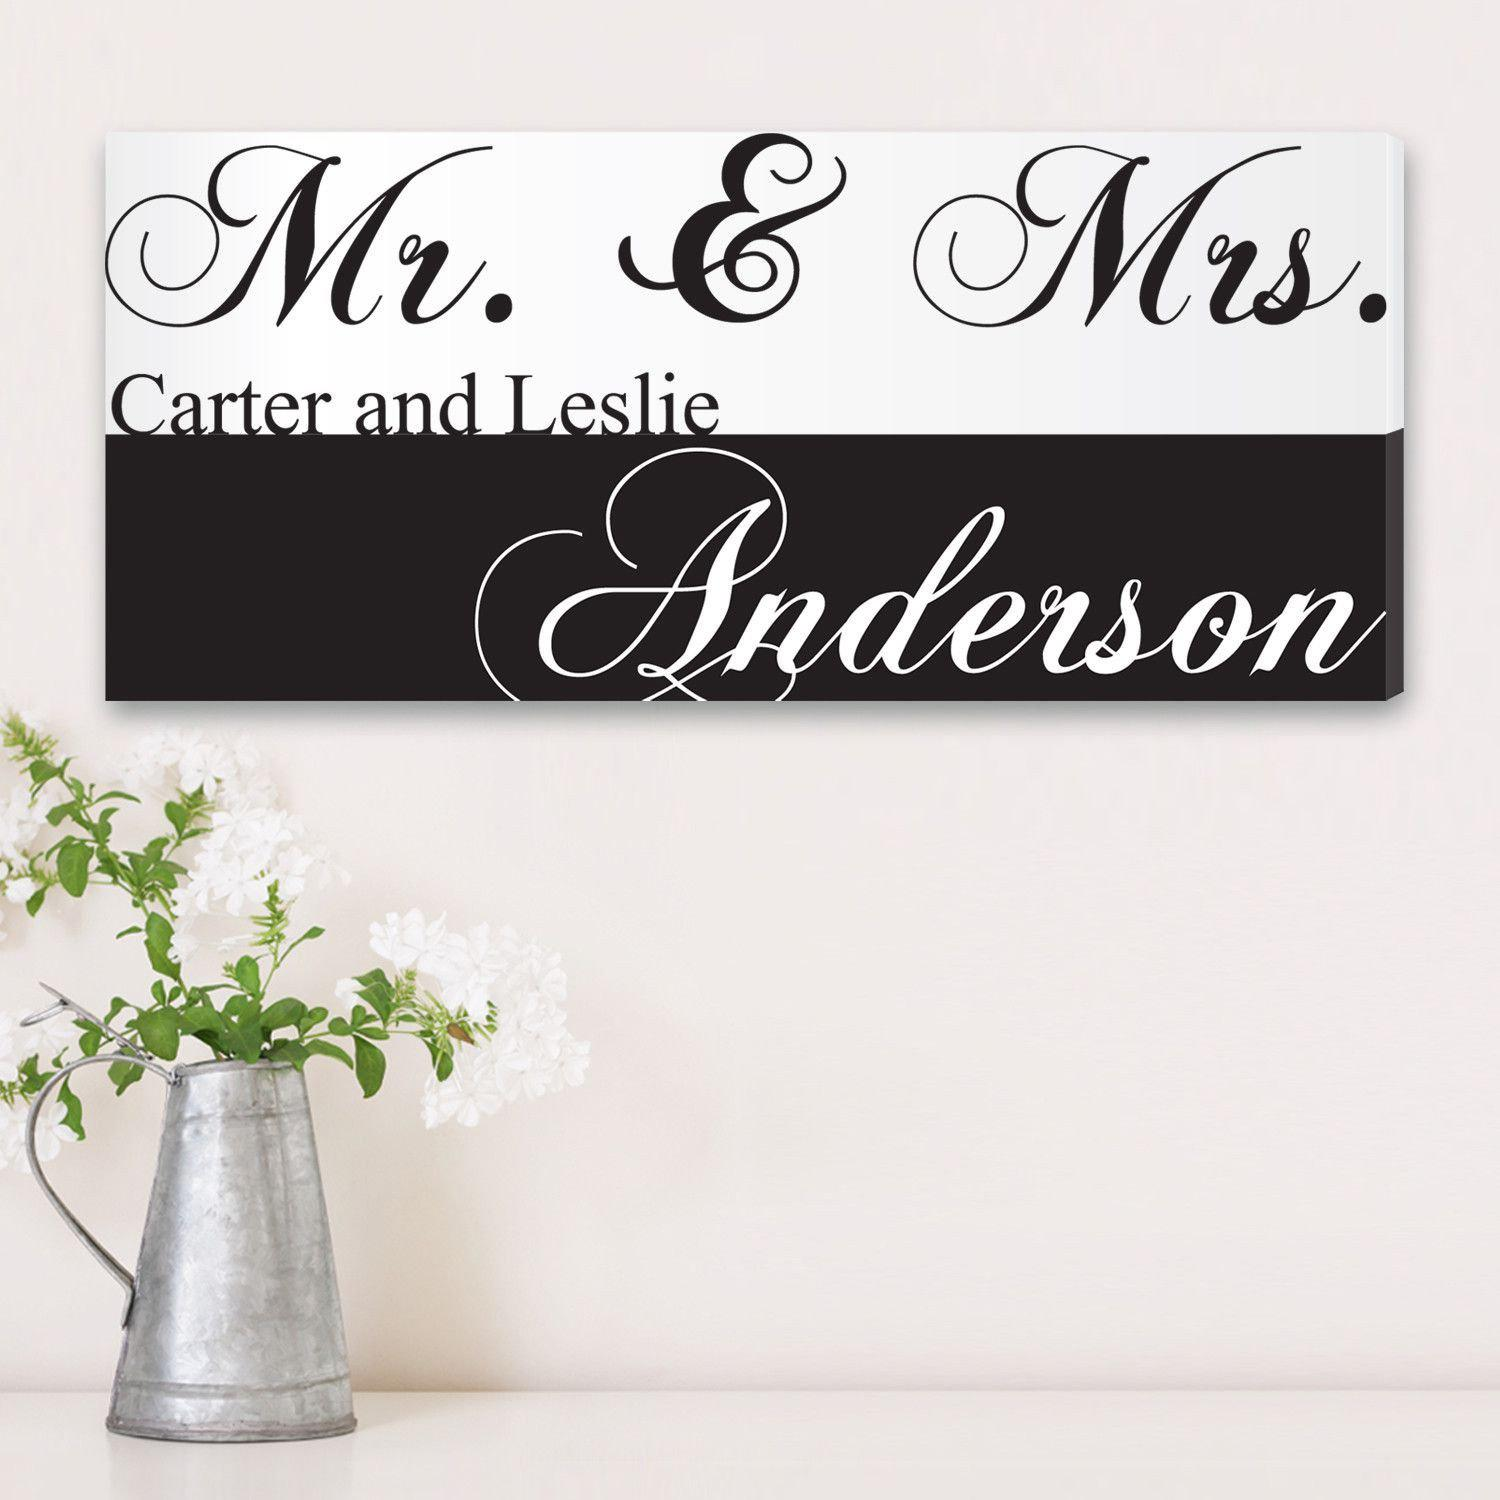 Personalized Wedding Canvas: Personalized Signs